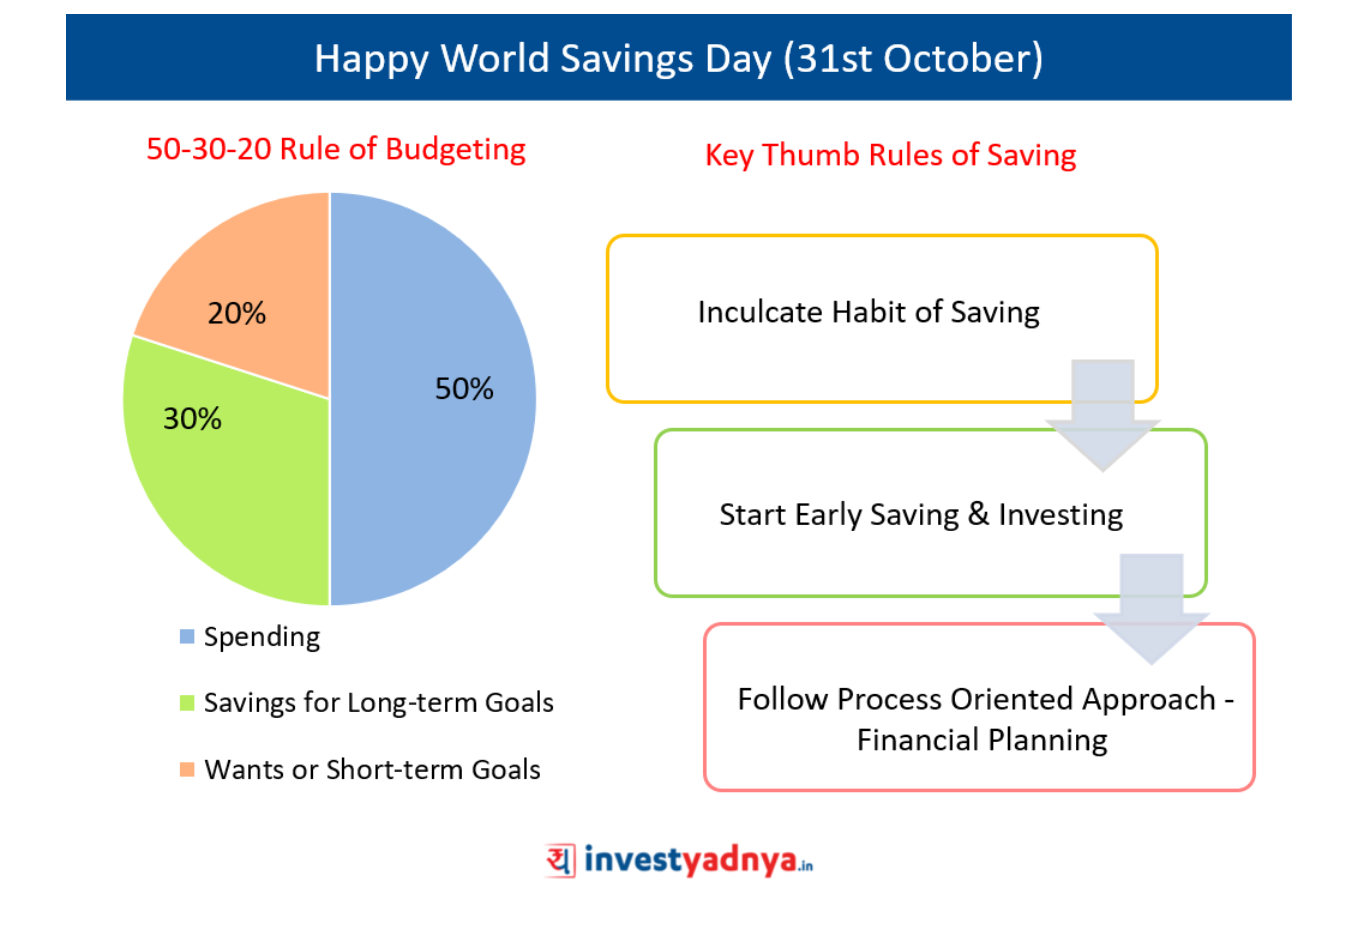 World Savings Day (31st October)